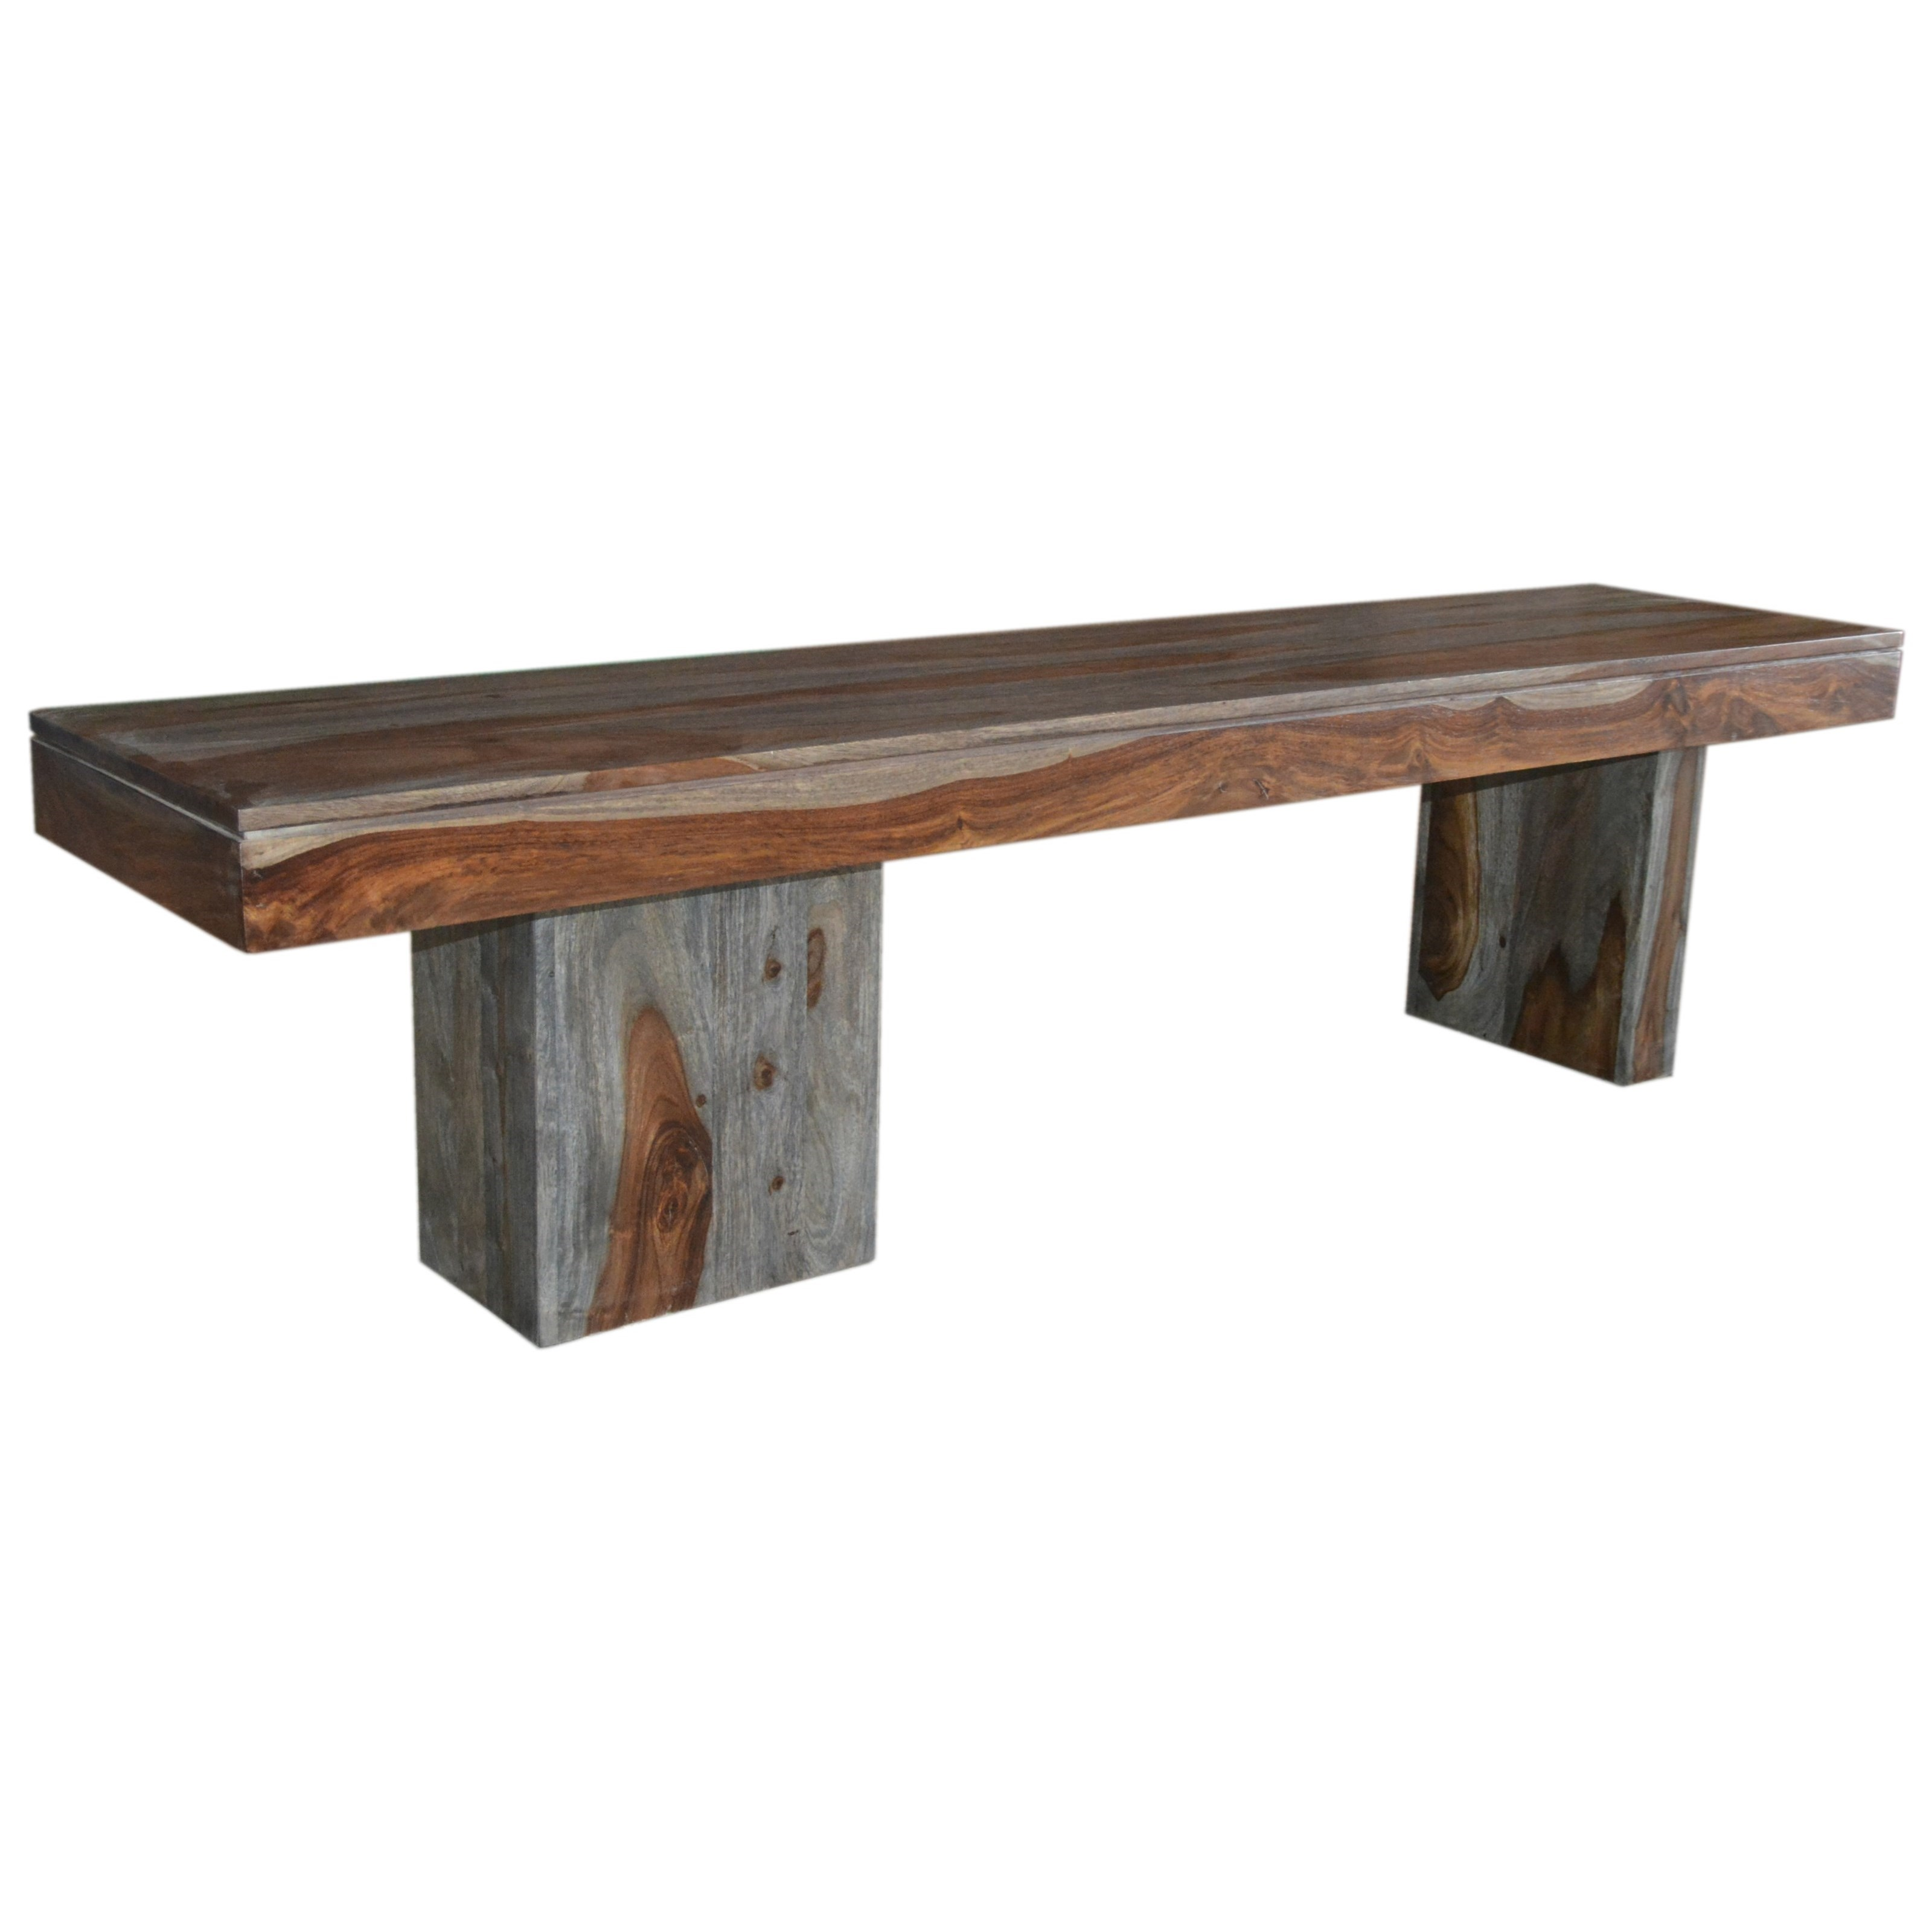 Wooden Dining Room Benches: Wooden Dining Bench By Coast To Coast Imports